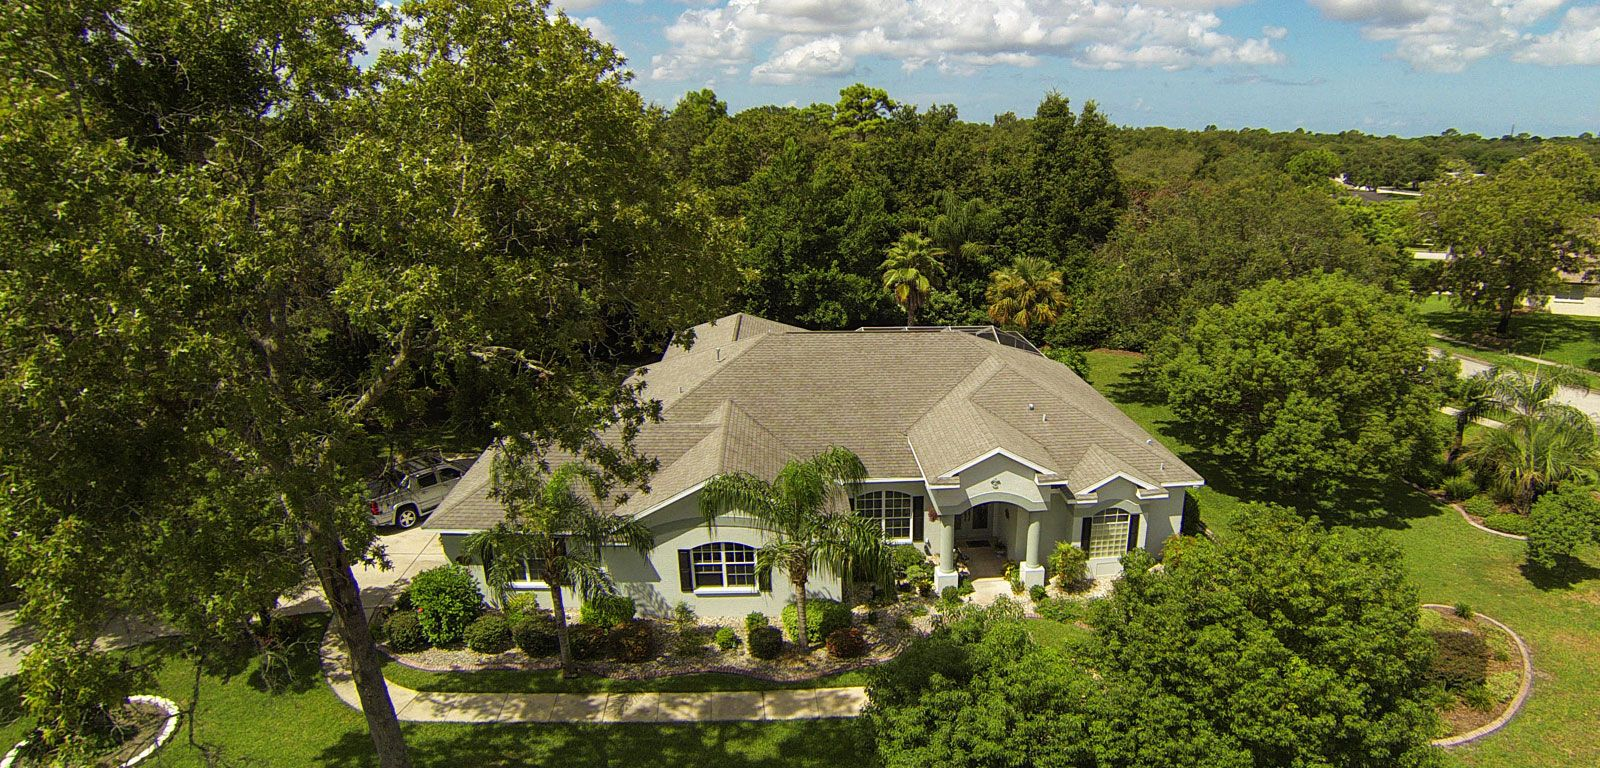 Aerial Photo Of A Luxury House In The Middle Green Trees